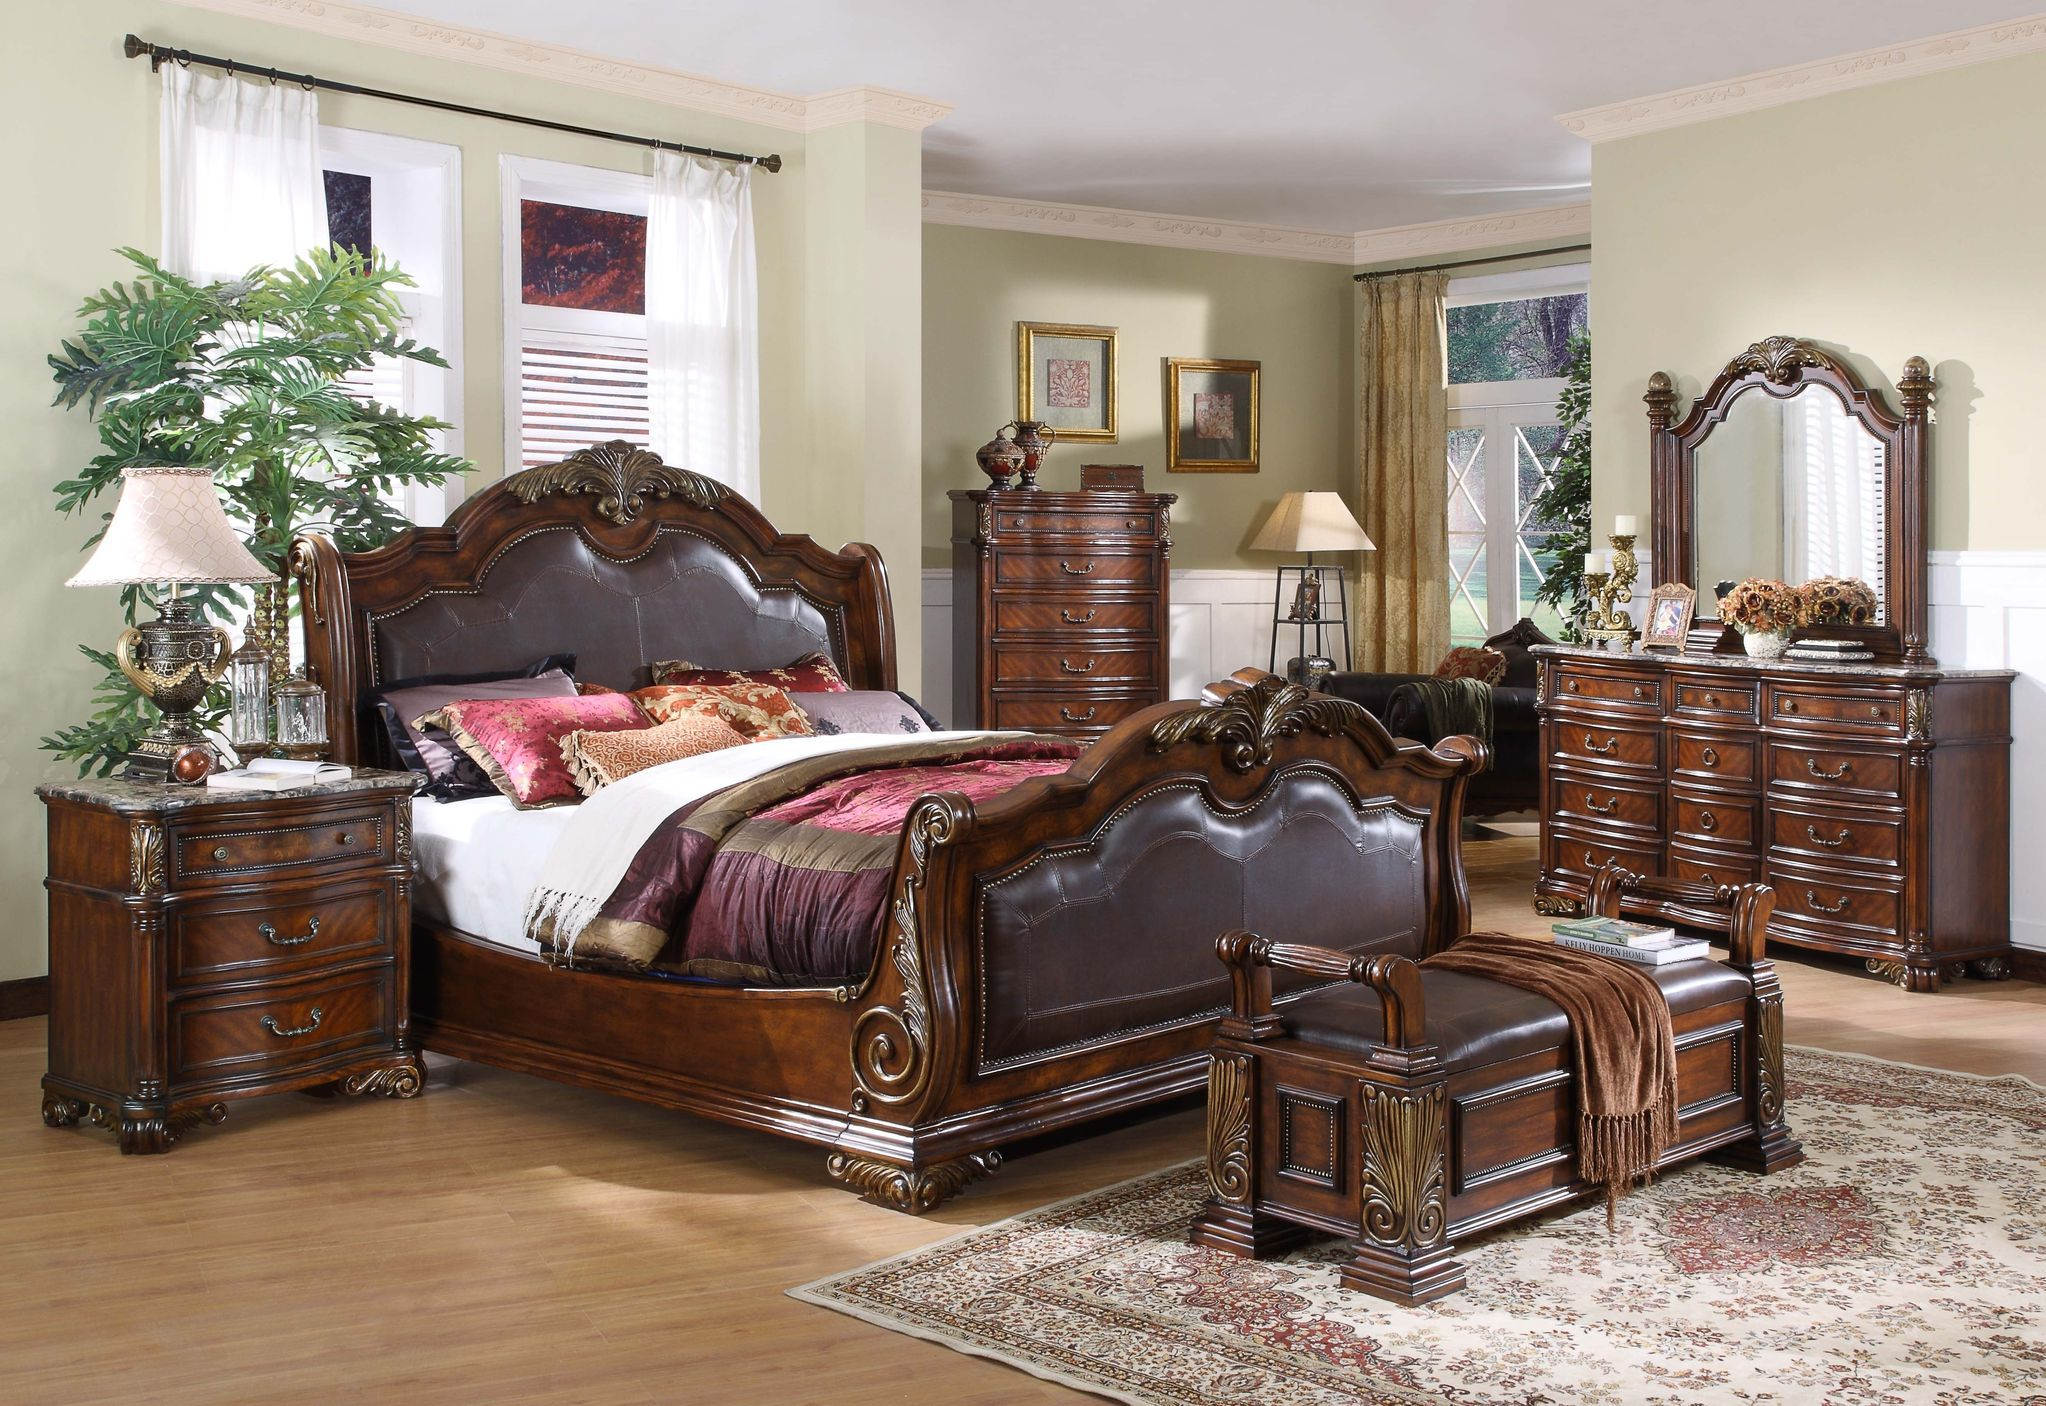 Superieur Explore Thomasville Bedroom Furniture And More!